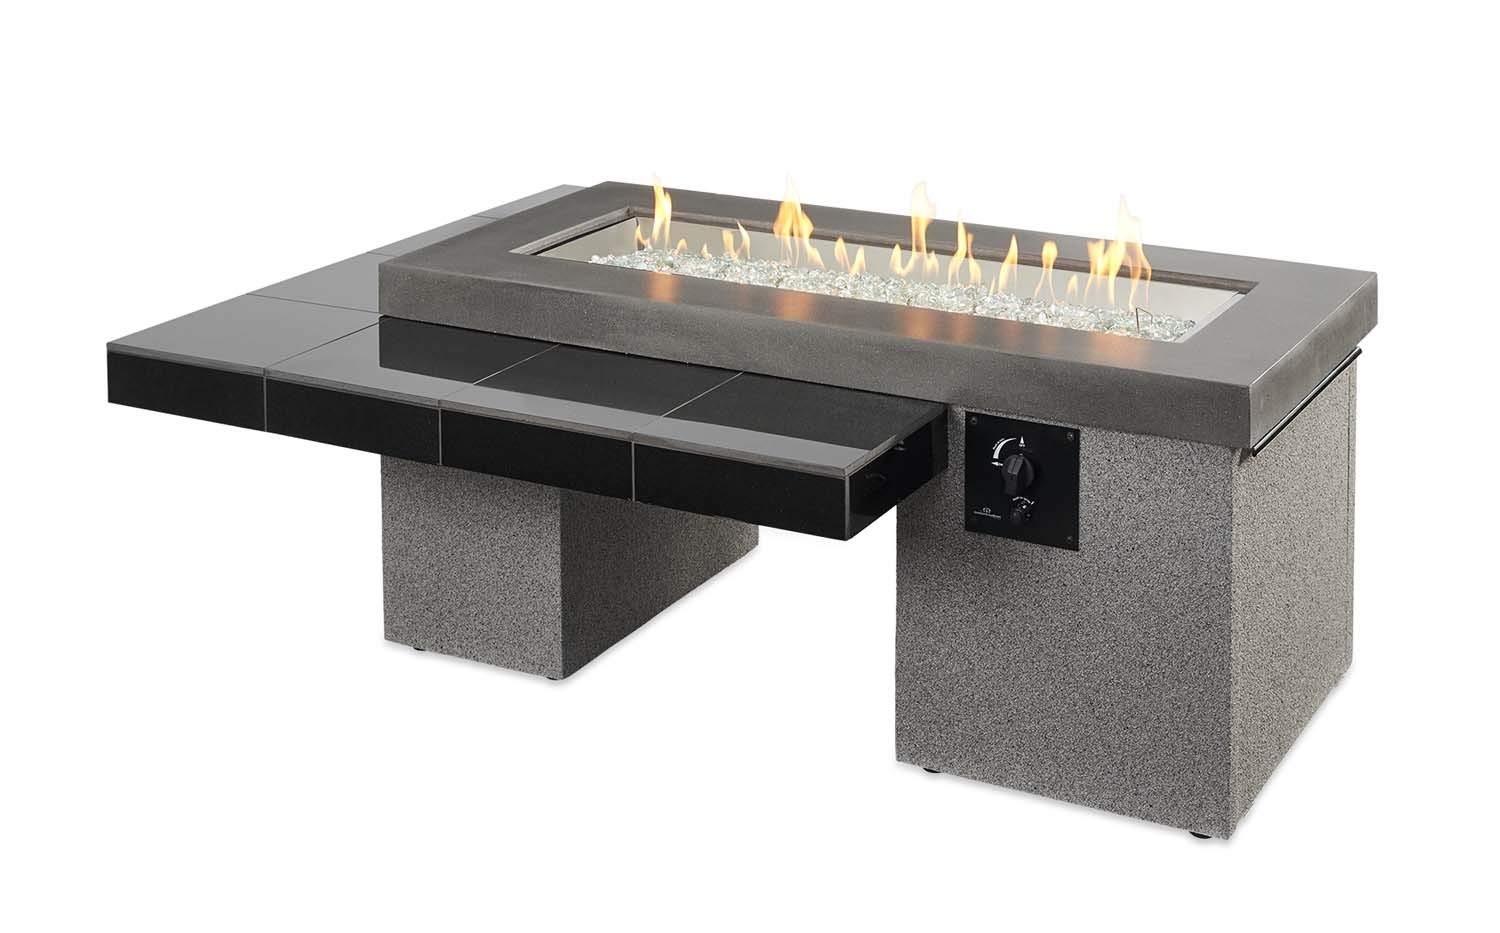 Outdoor Greatroom Uptown Gas Fire Pit with 42x12 Inch Burner, Black by The Outdoor GreatRoom Company